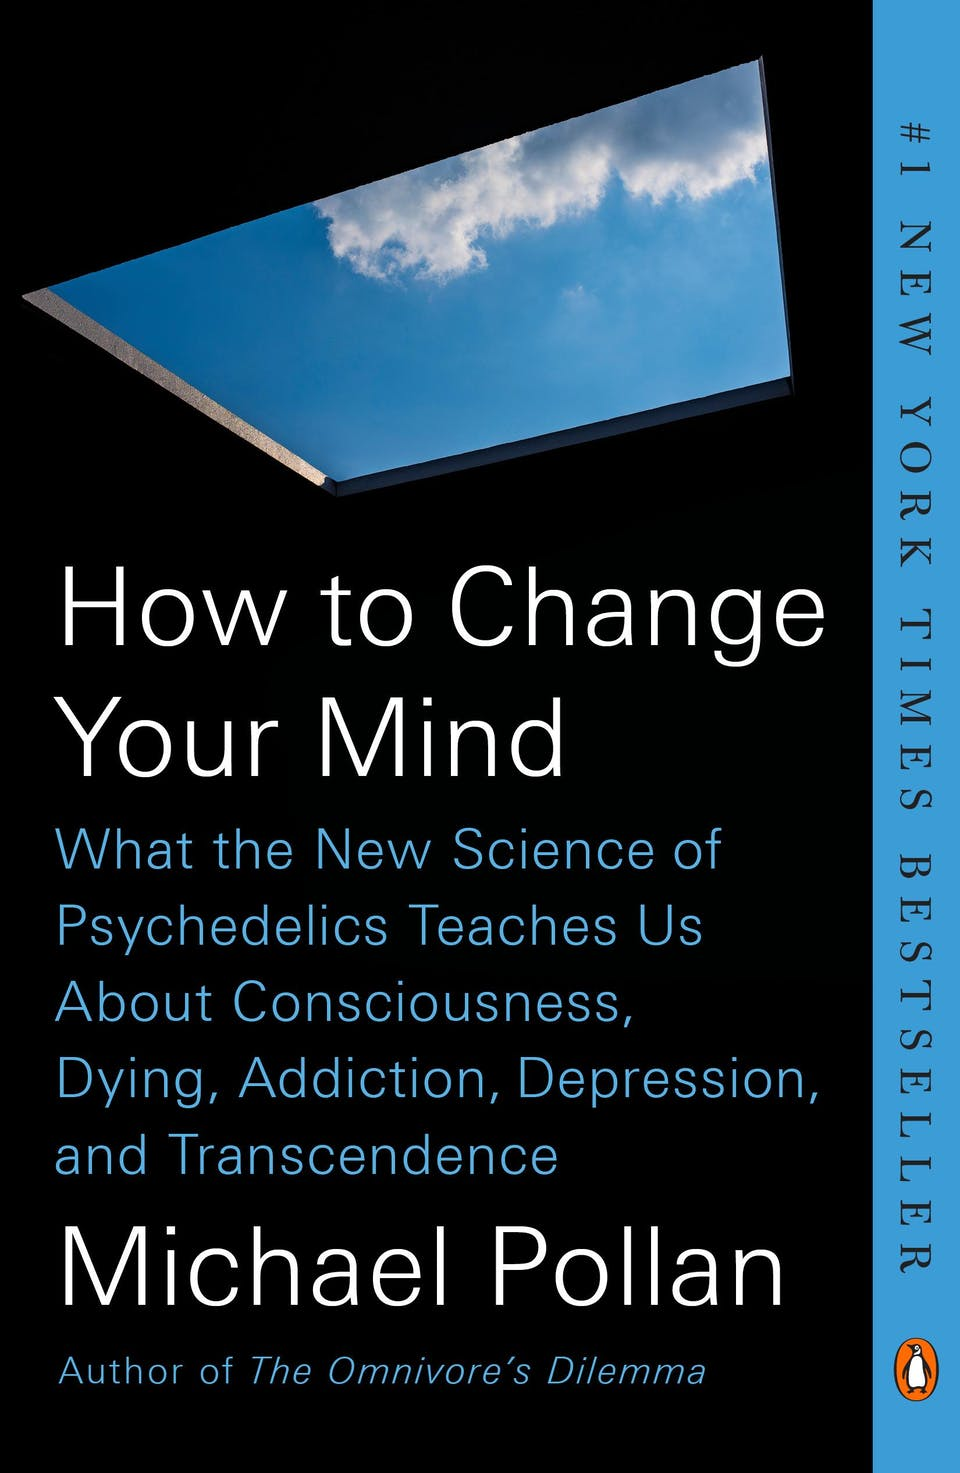 How to Change Your Mind: A Conversation with Michael Pollan Second Seating!